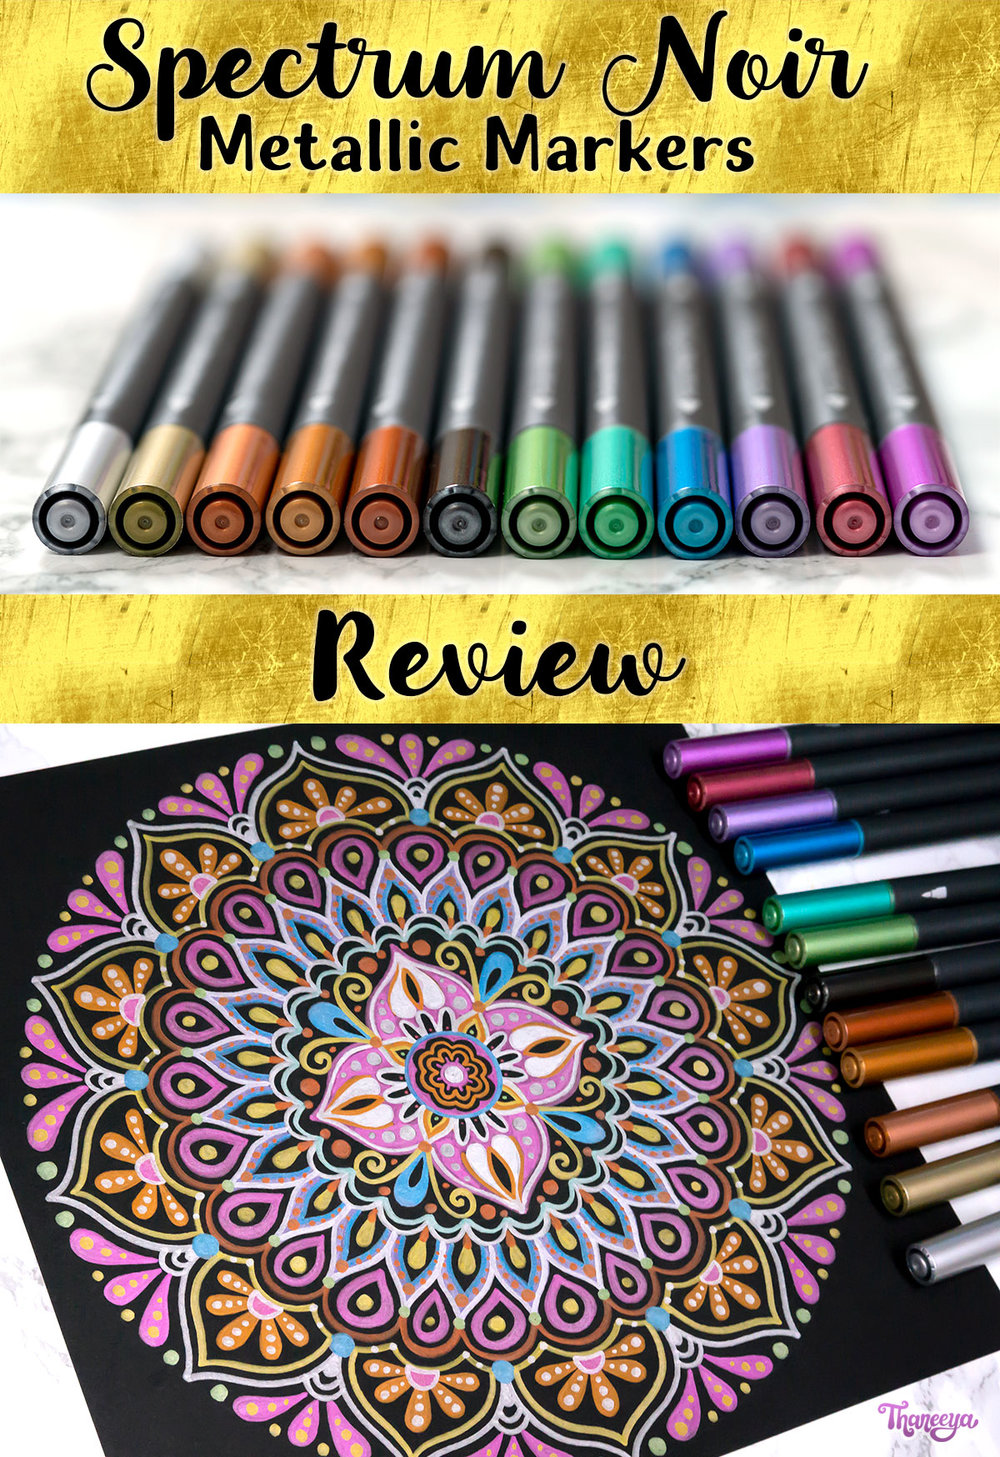 Spectrum Noir Metallic Markers Review by Thaneeya McArdle